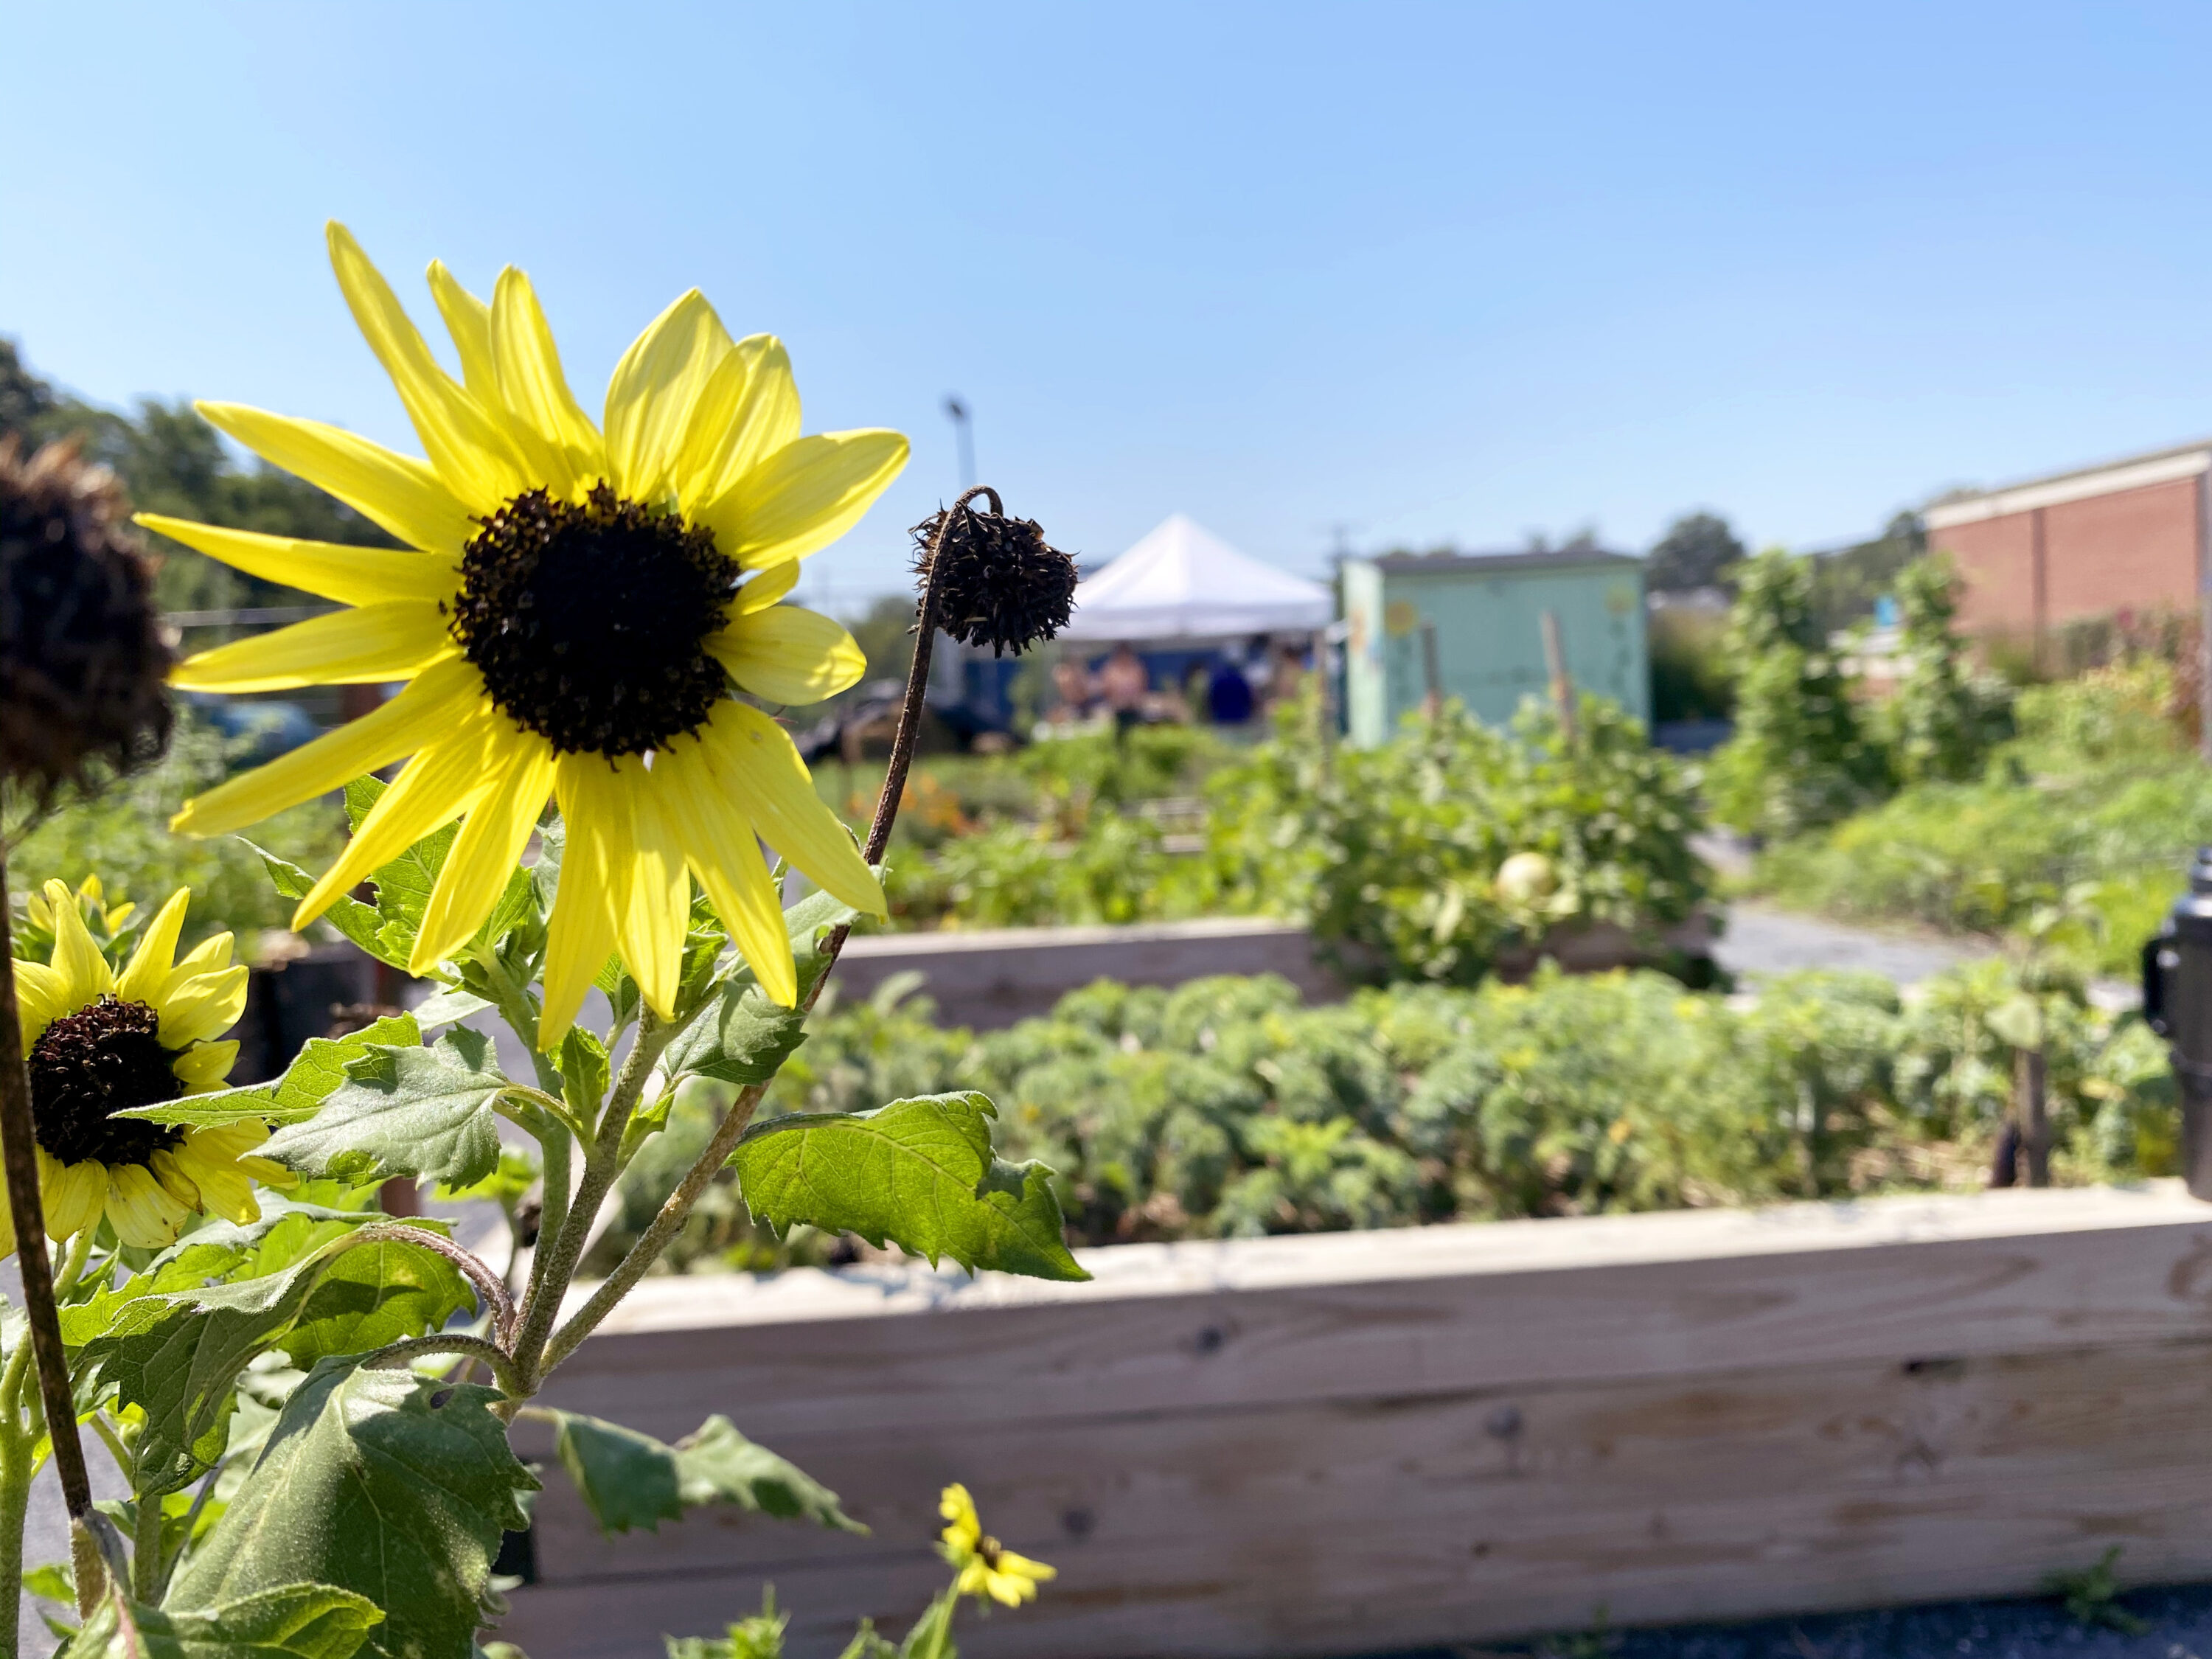 A bright yellow sunflower in the foreground in front of a blurry background of wooden planter beds filled with lush, healthy, green plants growing in an urban garden.